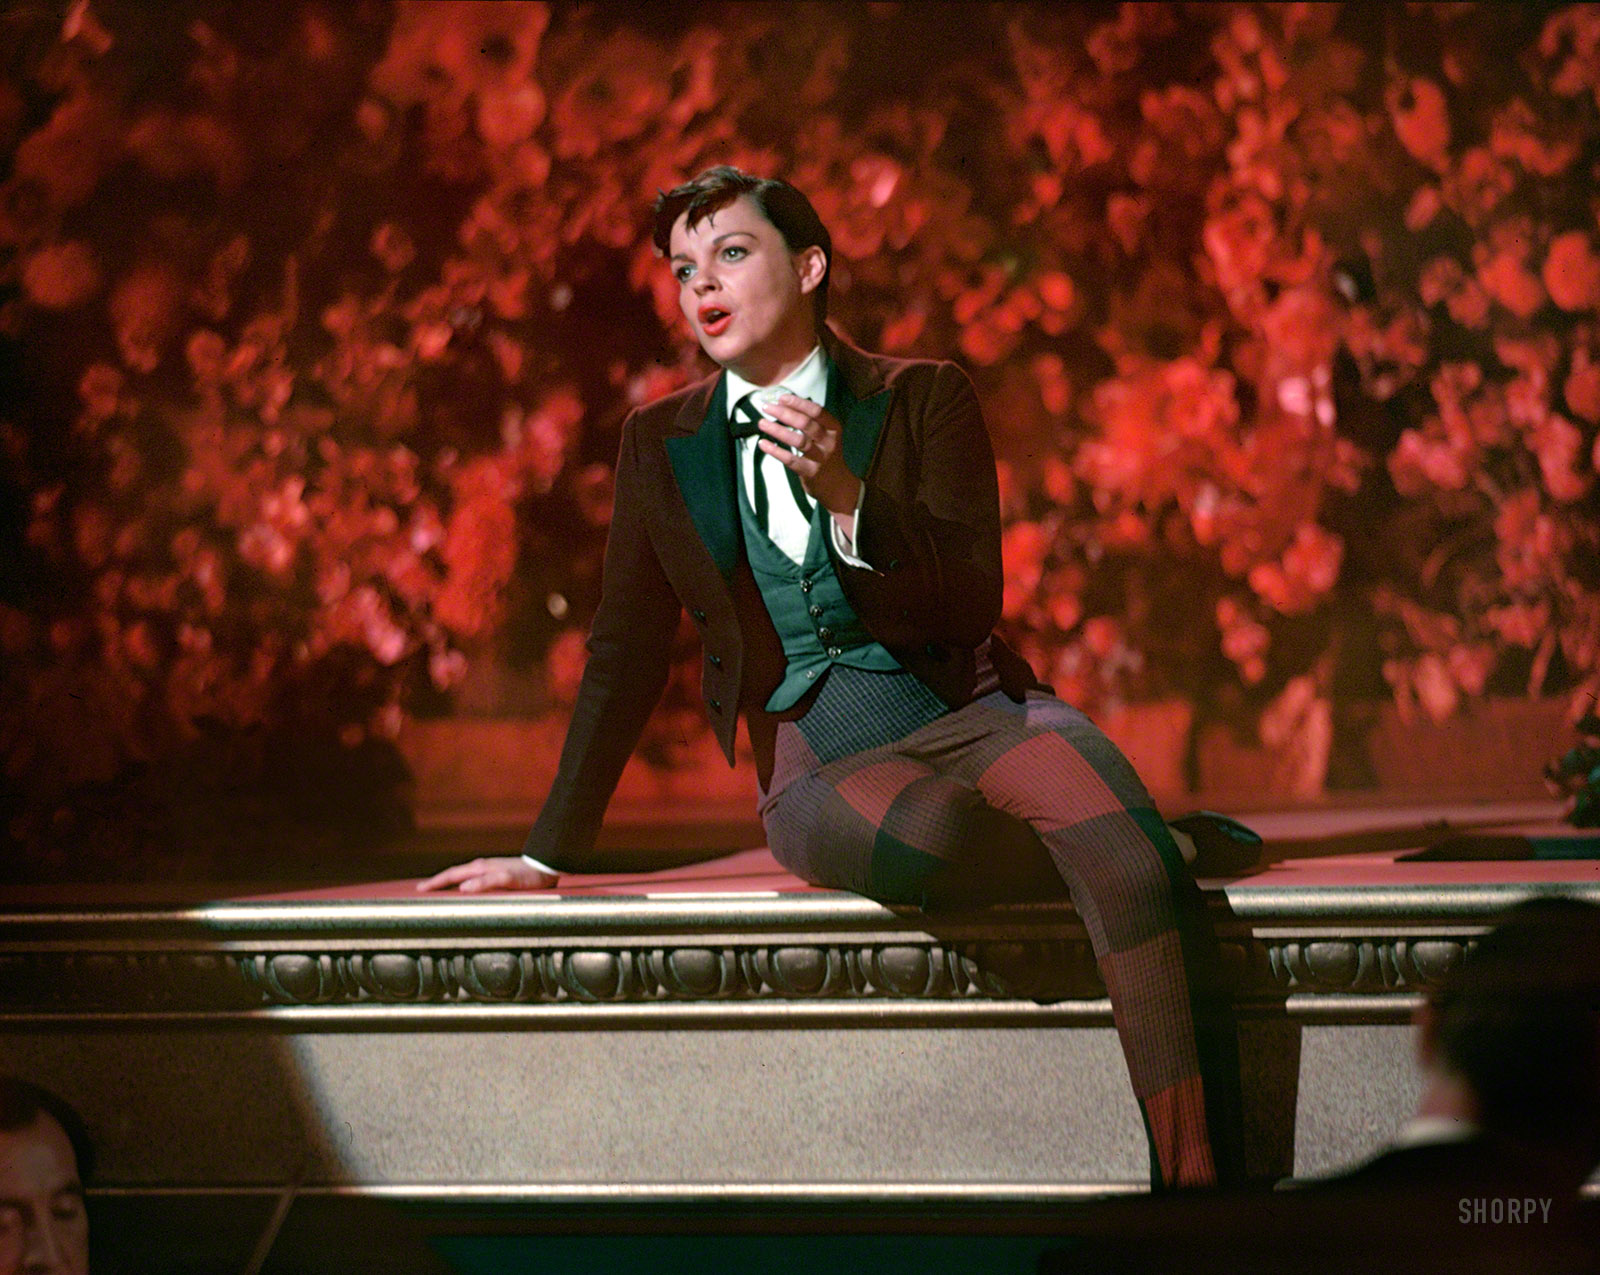 Judy Garland in A Star is born (Ein neuer Stern am Himmel) 1955